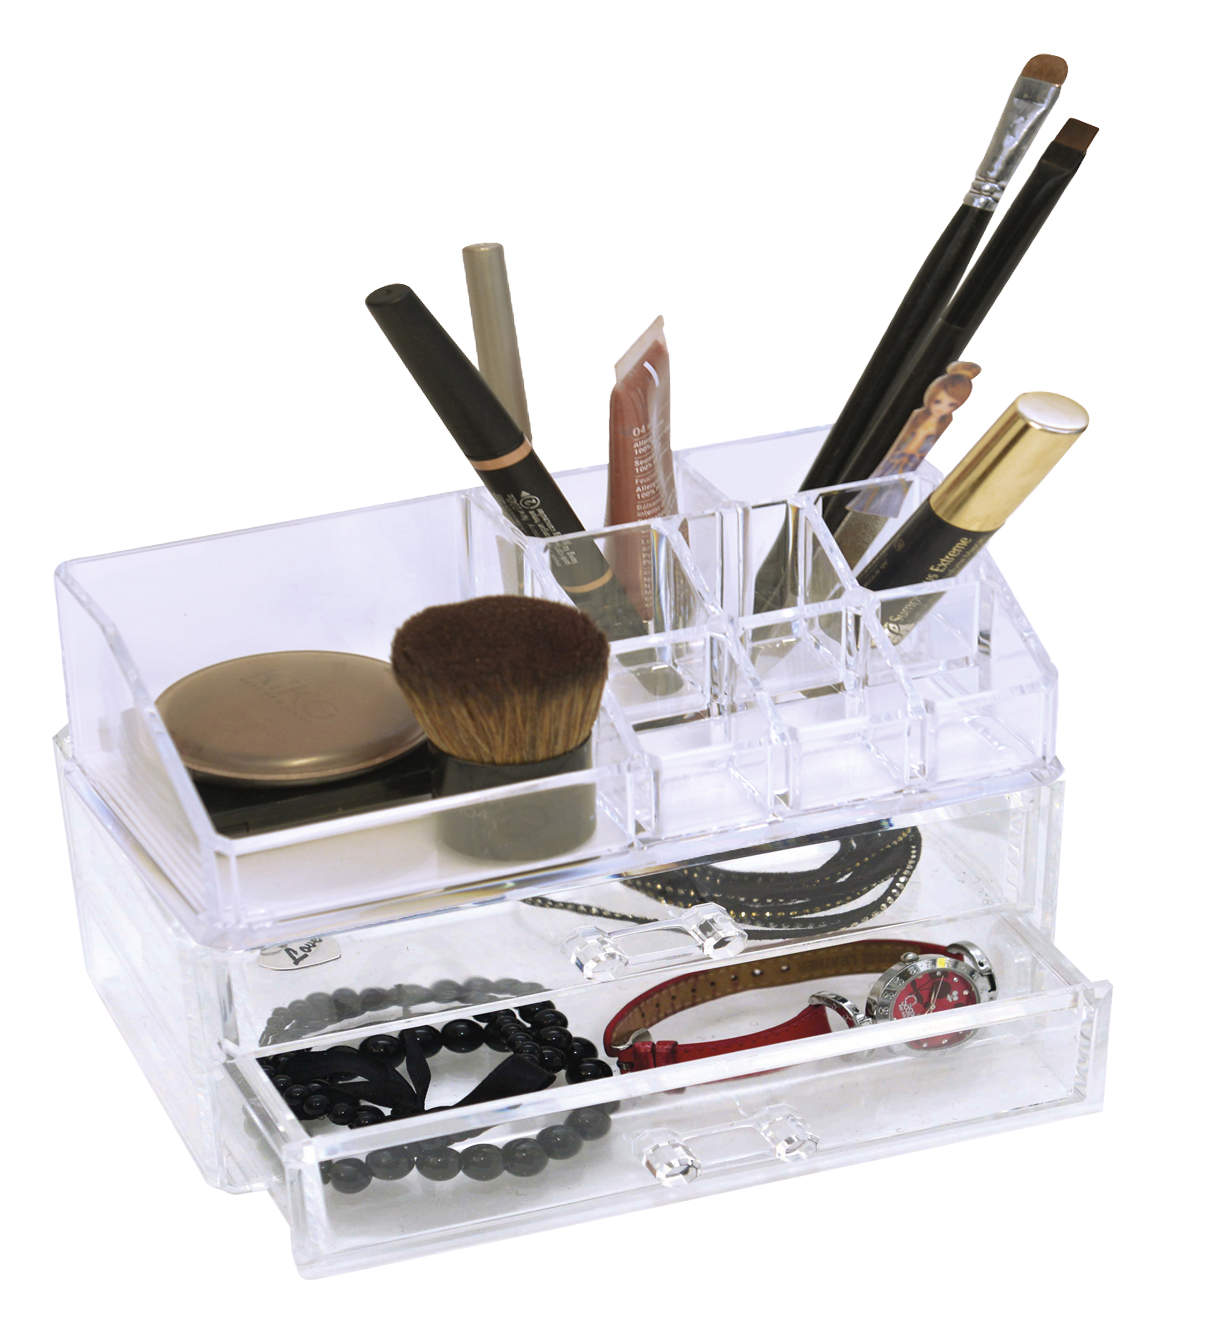 525846d9d5d5 Evideco BOREAL Bathroom Makeup and Cosmetic Storage Organizer 9  compartments Open Top